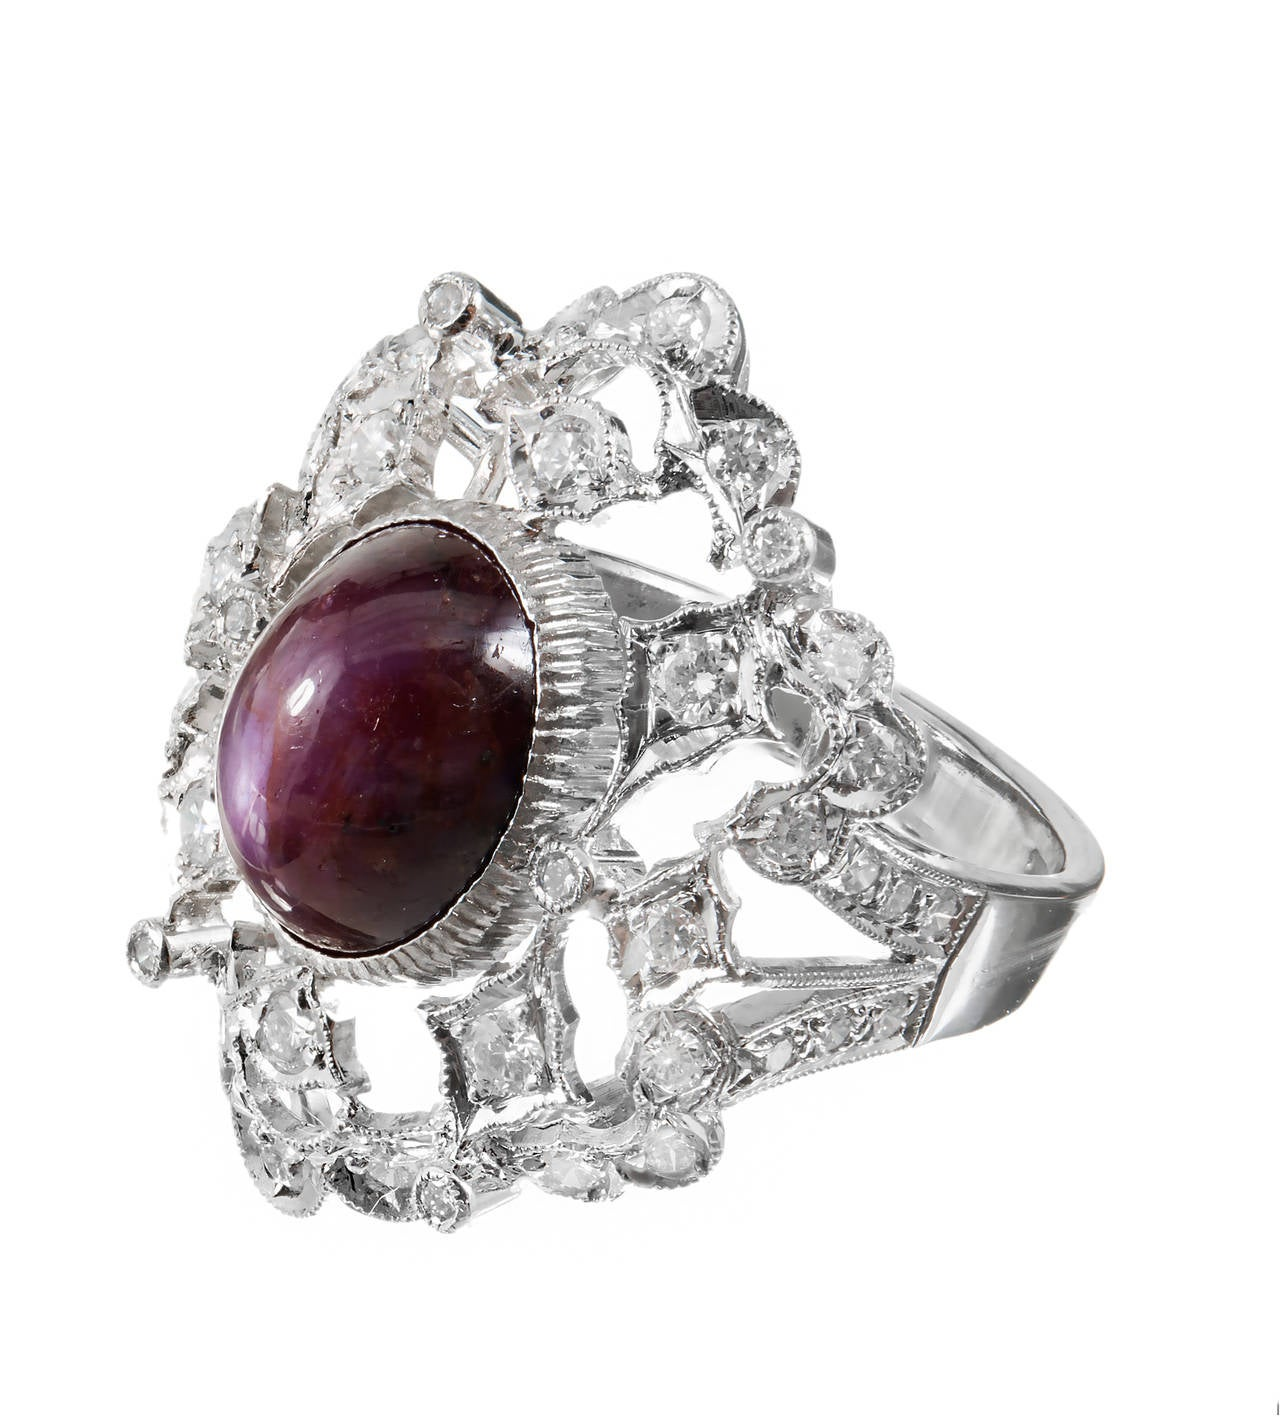 Rare natural certified no heat purplish red star Ruby approx. 3.00cts in an 18k white gold estate open work ring. Matches our star Ruby earrings.  1 oval cabochon purplish red star Ruby, approx. total weight 3.00cts, 10.52 x 8.50 x 7.67mm,